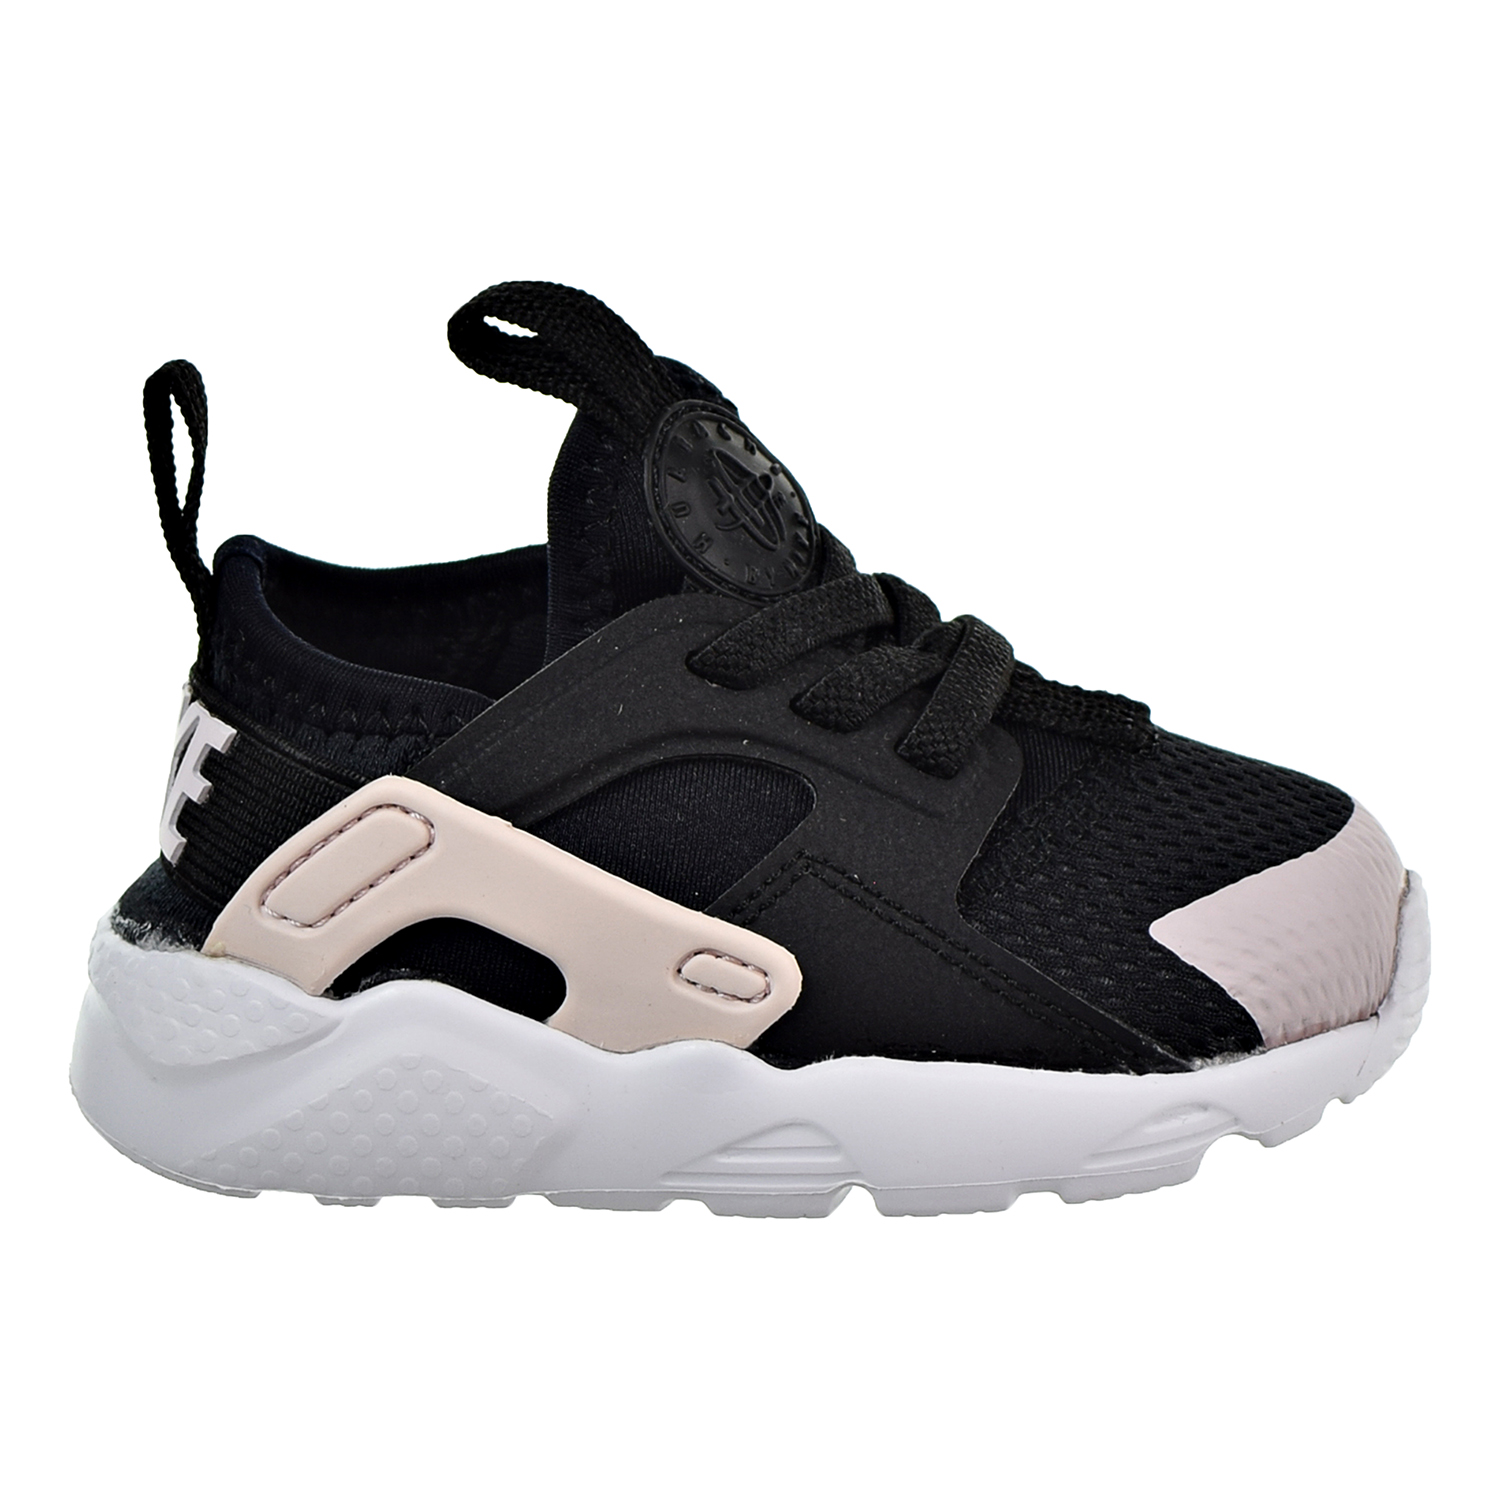 33212c851e34d Details about Nike Huarache Run Ultra Toddlers  Shoes Black Barely  Rose-White 859595-010